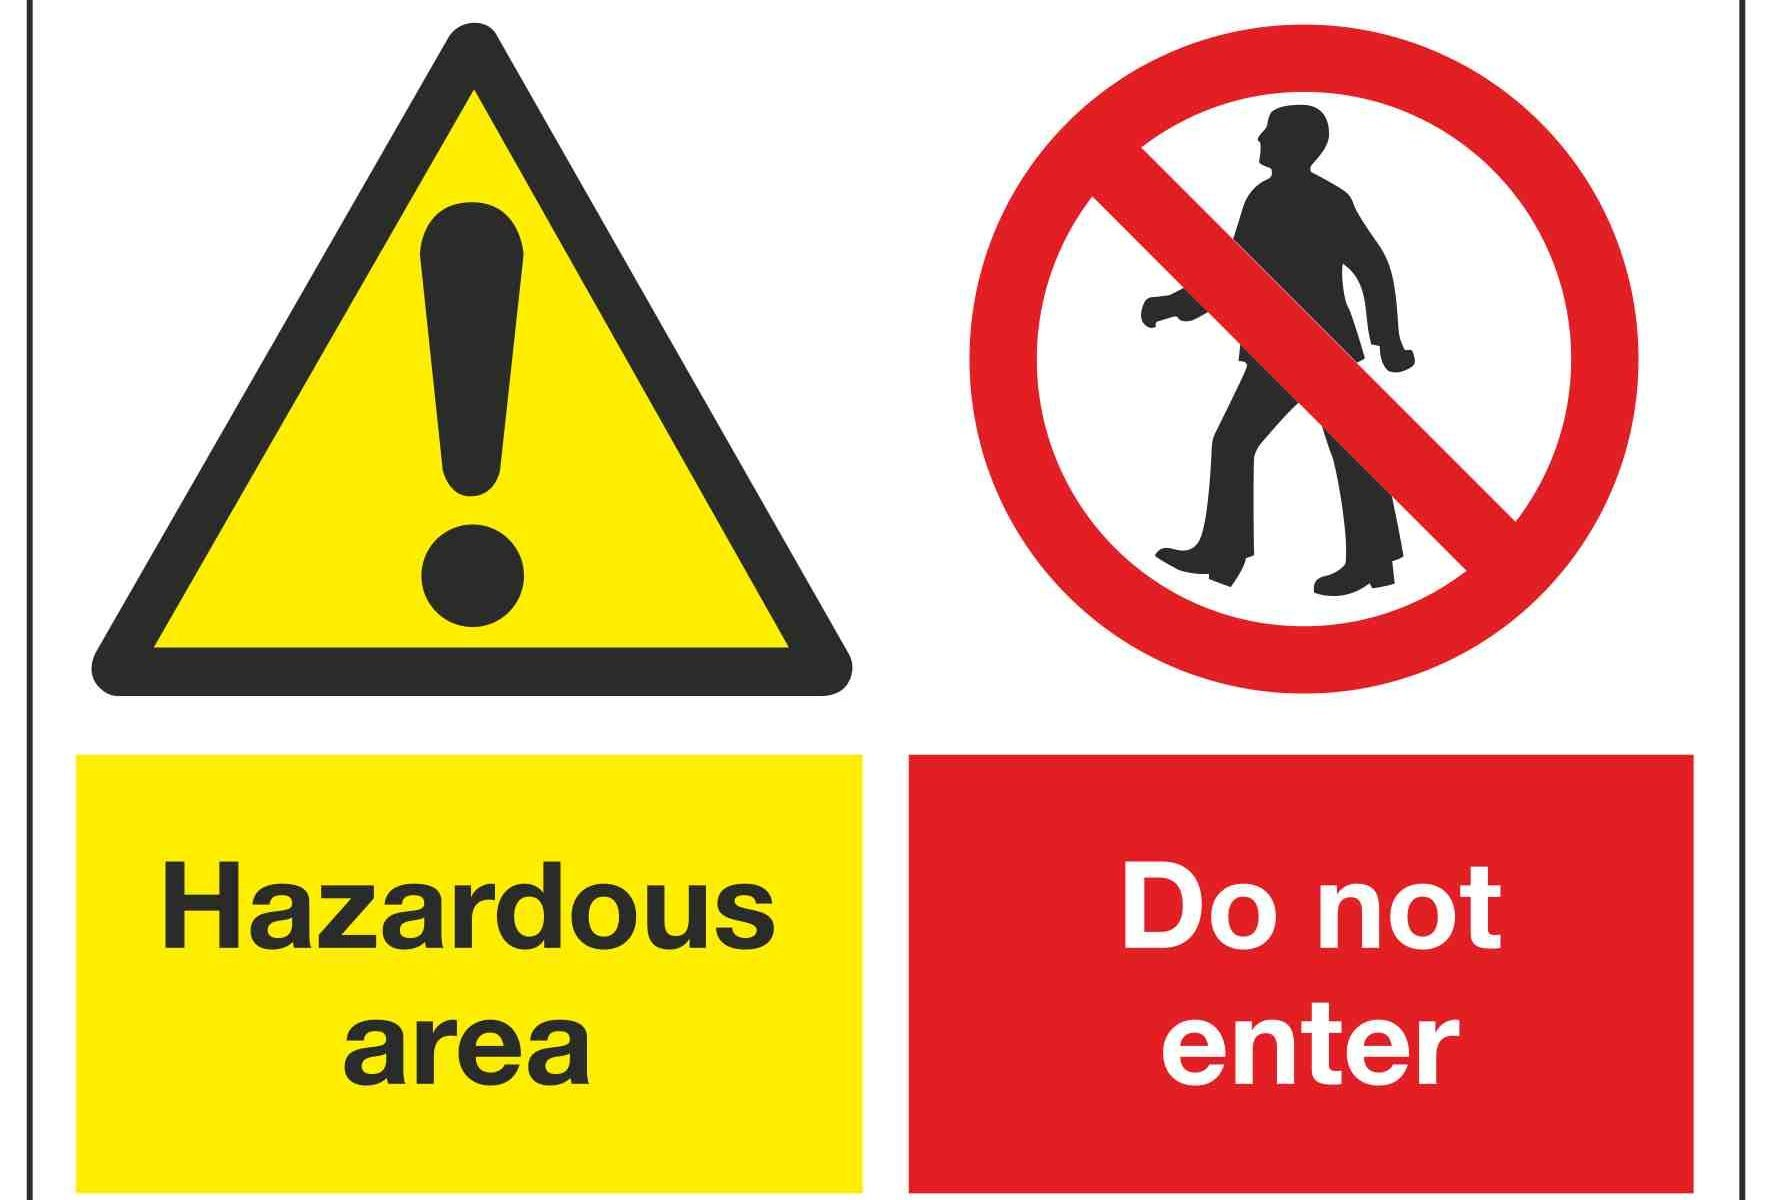 Hazardous area Do not enter